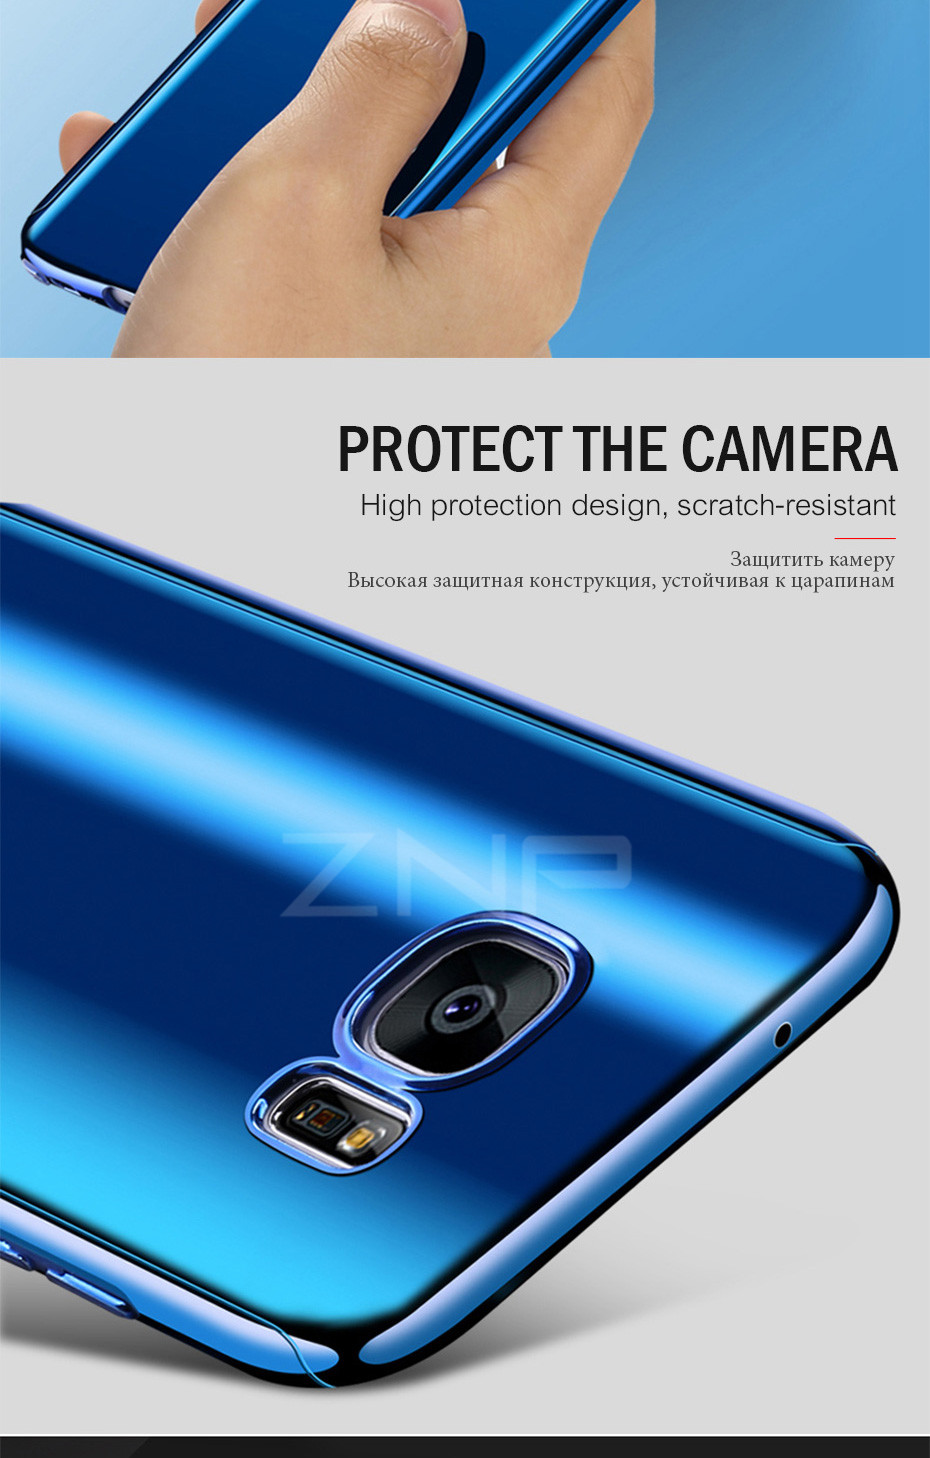 ZNP Luxury 360 Full Phone Case For Samsung Galaxy S9 S8 Plus Note 8 Bling Mirror Cover Cases For Samsung S7 Edge S9 S8 S7 Case 8